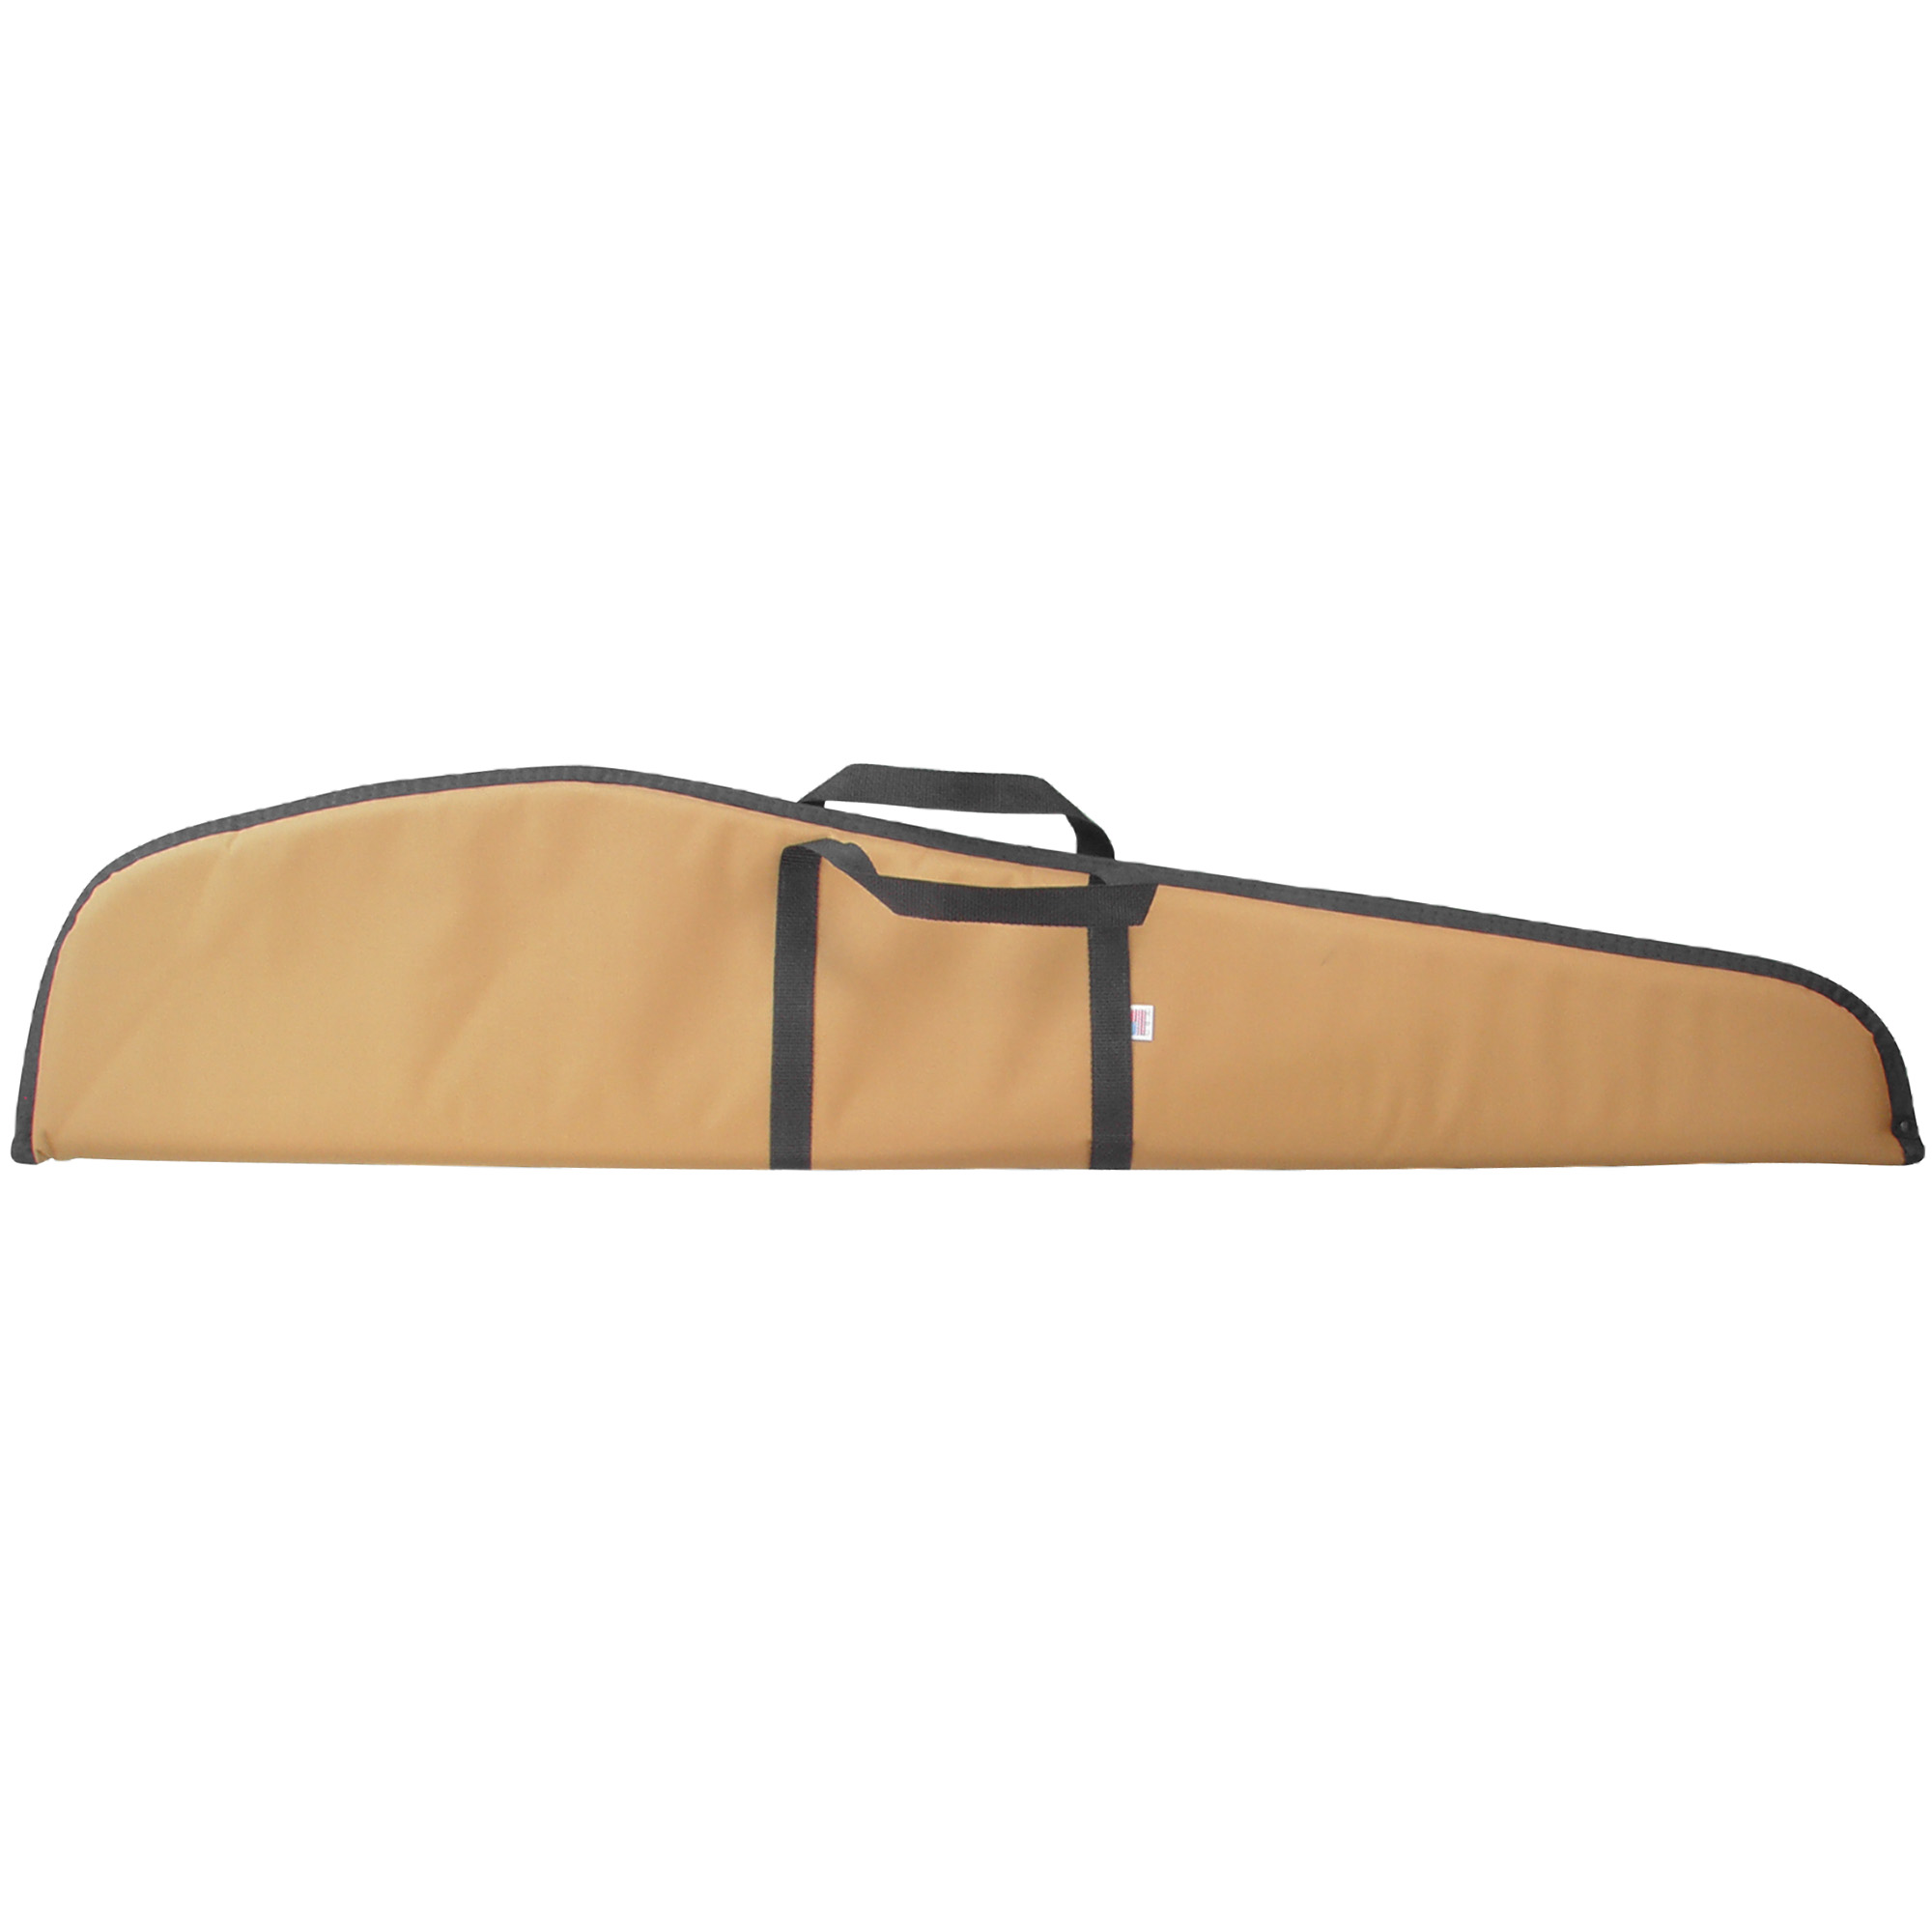 Allen Durango Scoped Gun Case 46""